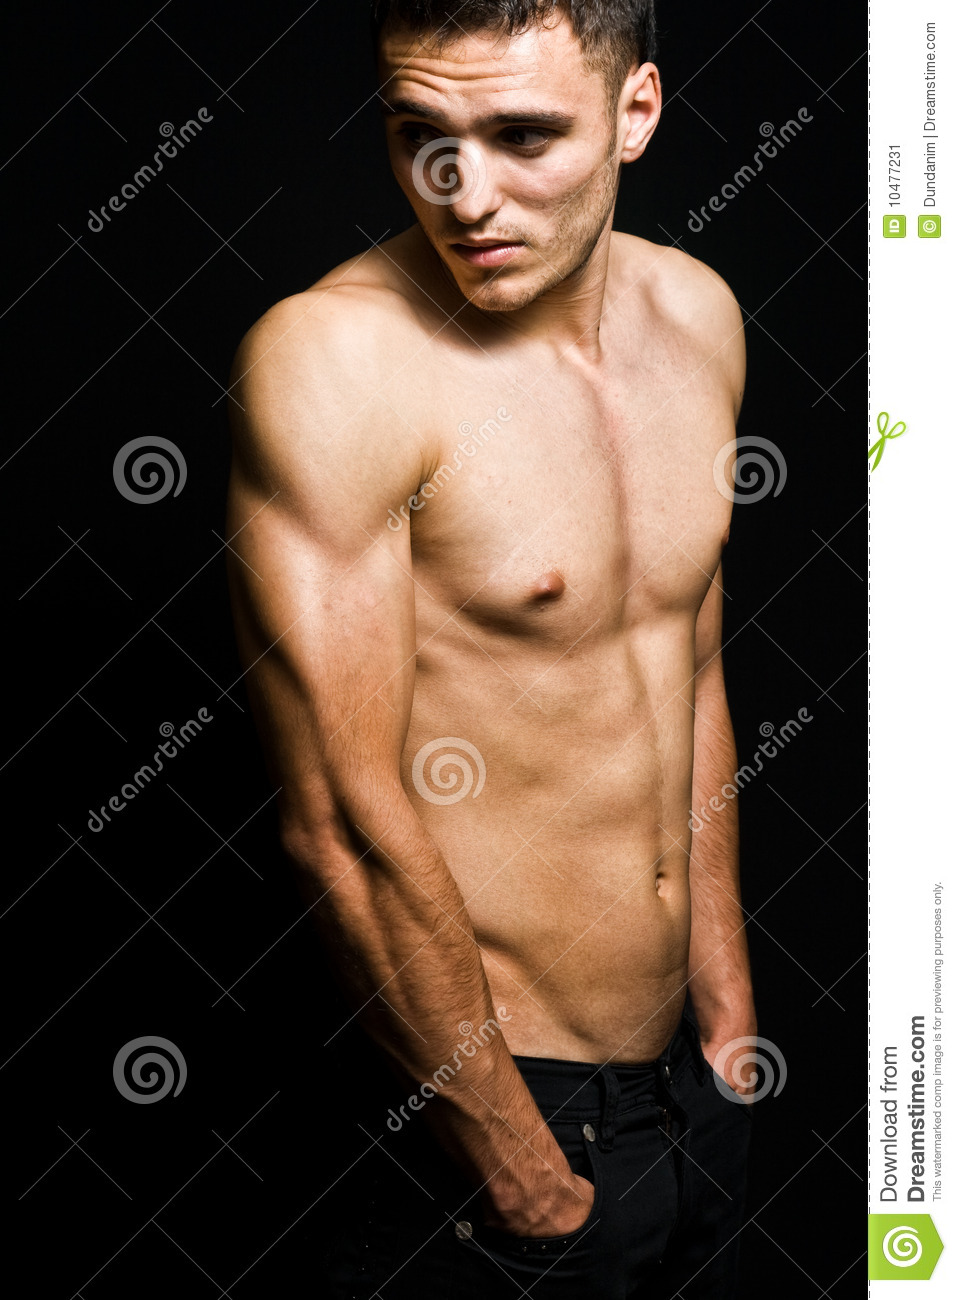 One shirtless cool masculine young man